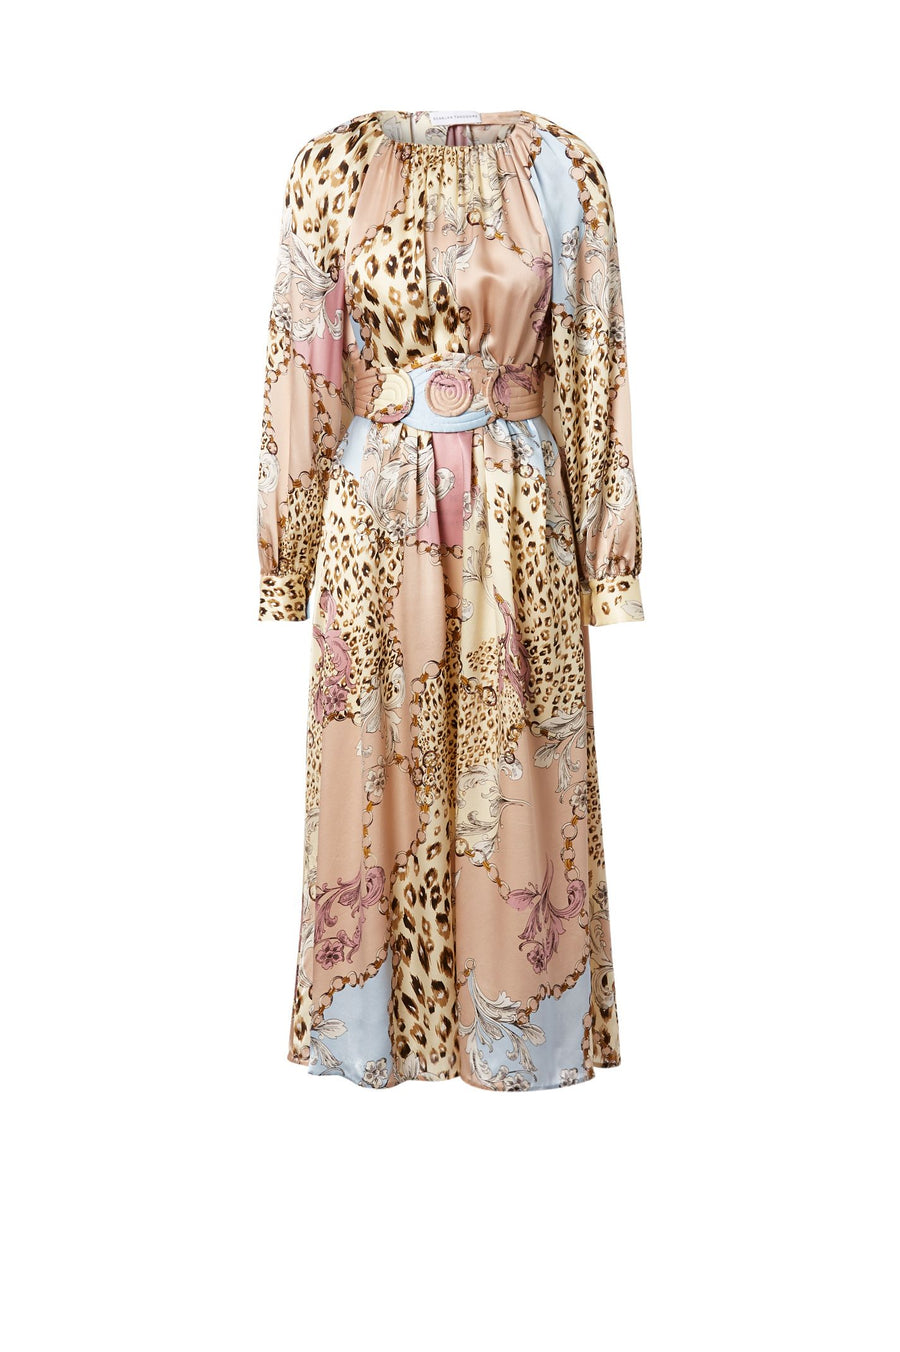 Silk Animal Chain Print Dress Nacello, midi length, ruched halter neckline, long draped sleeves